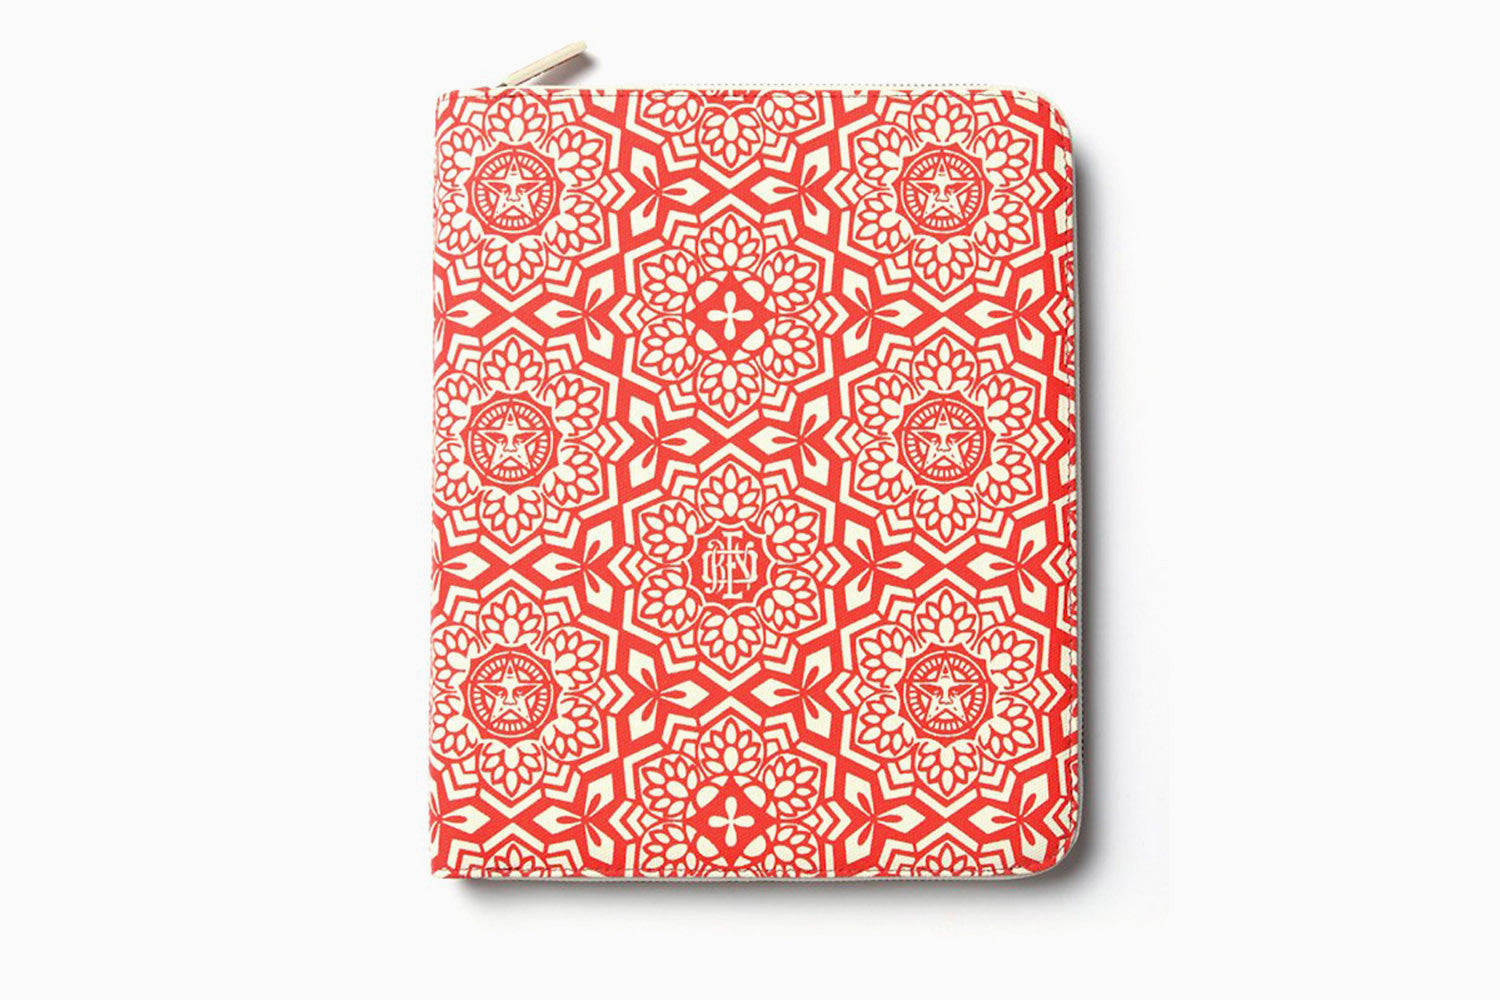 Shepard Fairey Coated Canvas Portfolio for iPad (Yen Pattern Red)